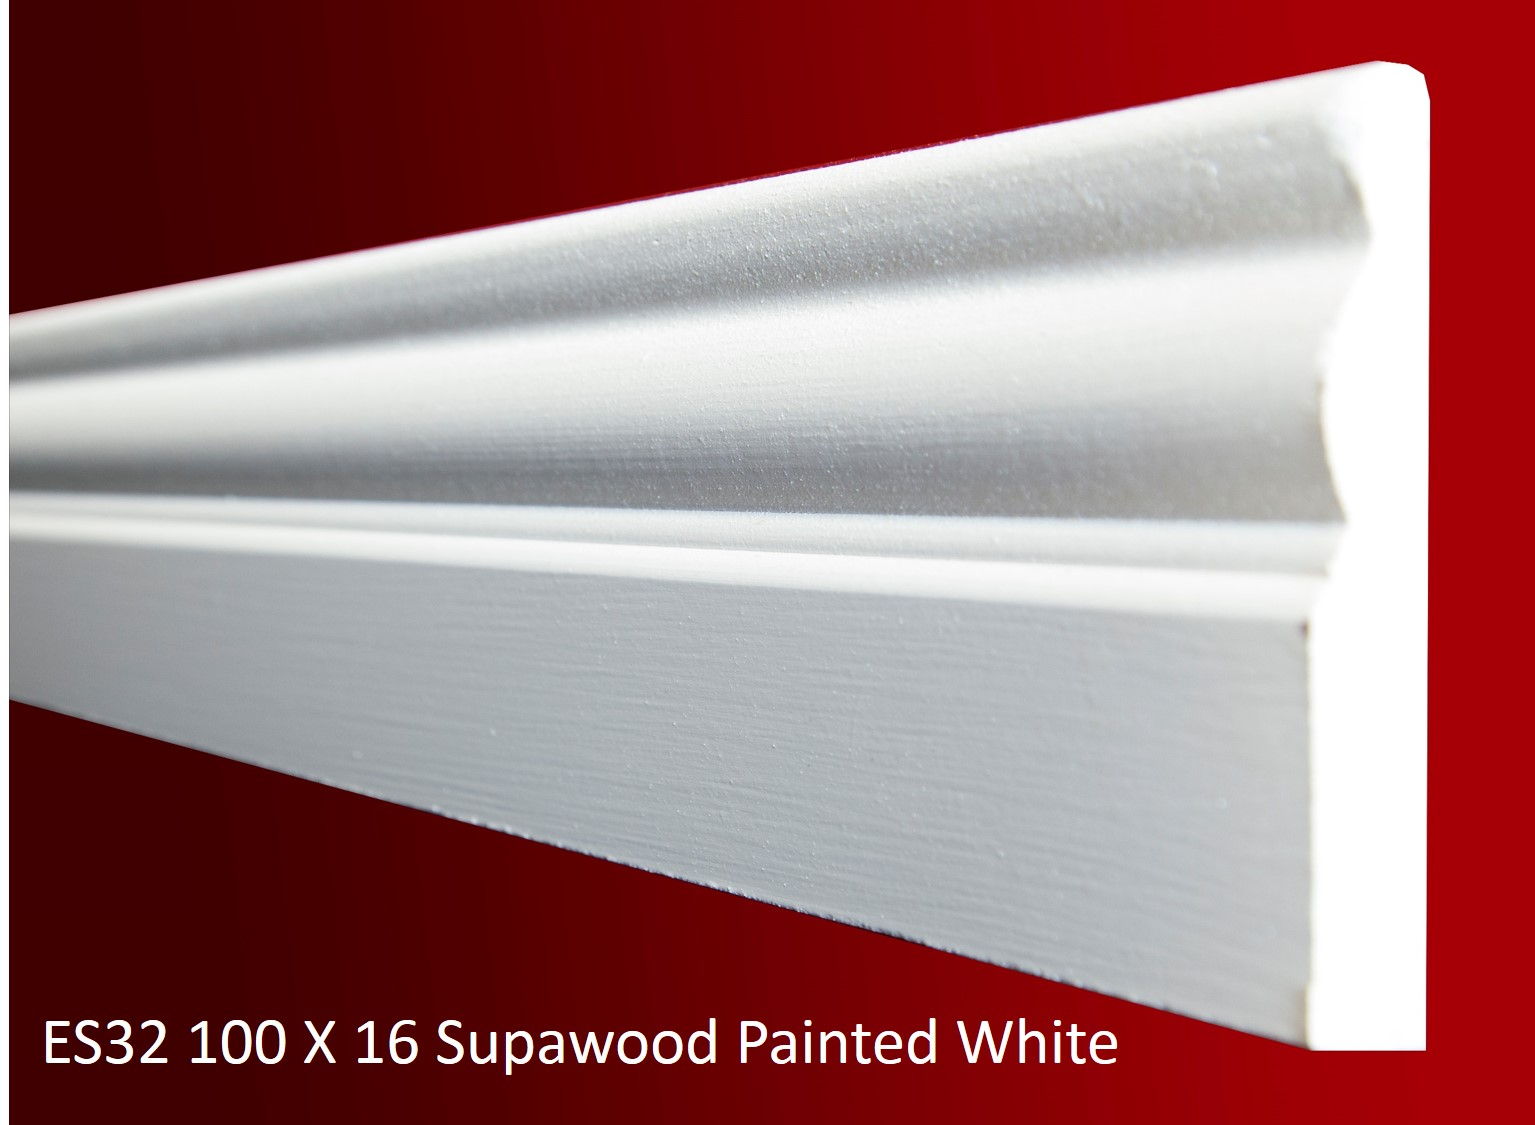 ES32 100 X 16 Supawood Painted White